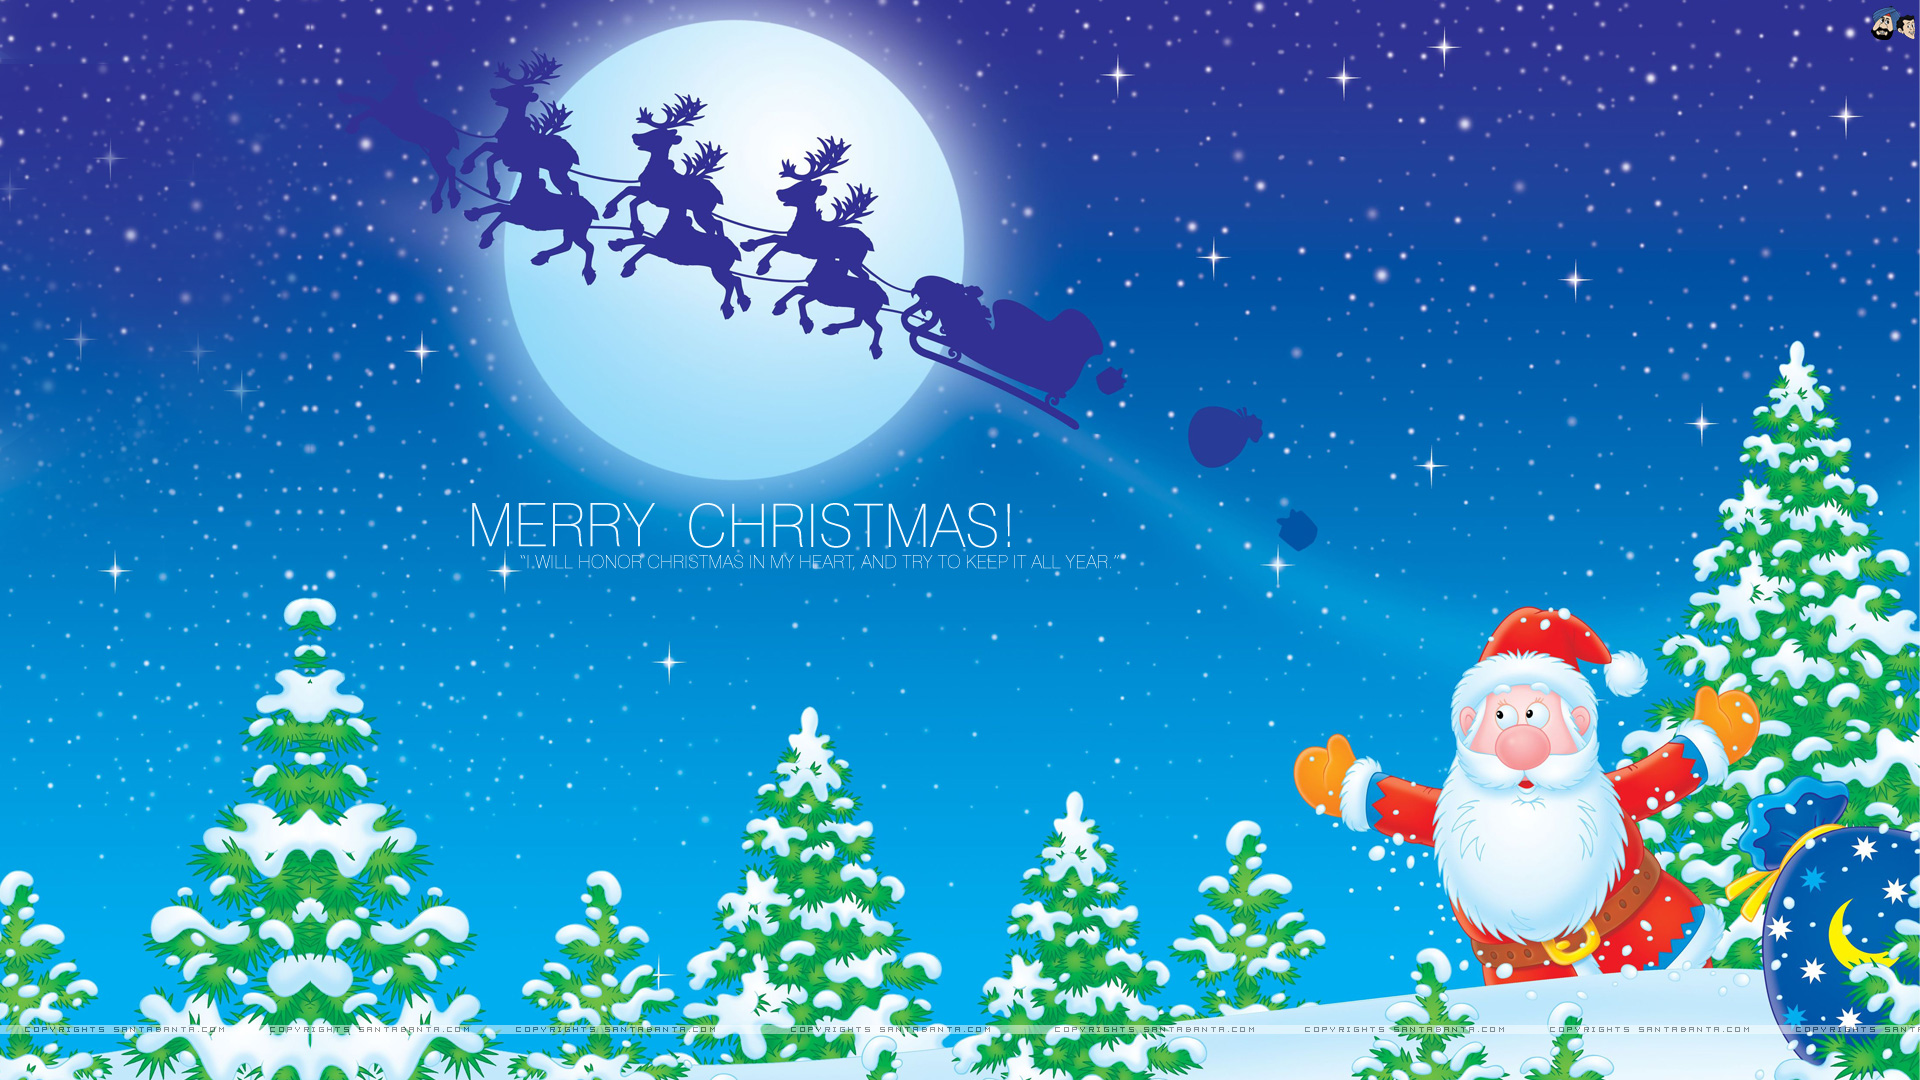 Download Cute Merry Christmas Background 12179 Full 1920x1080